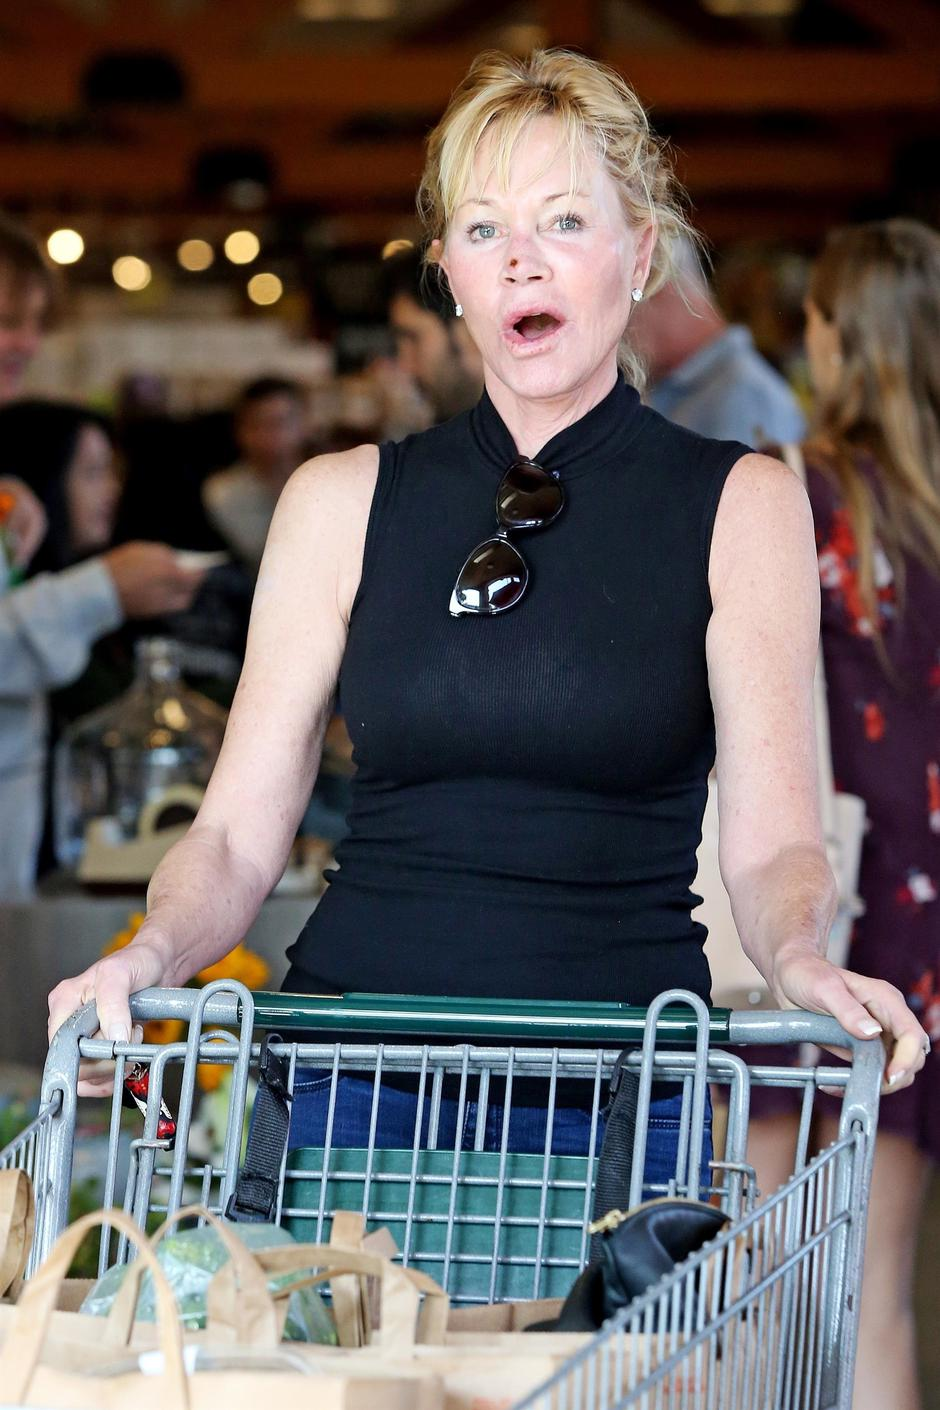 *EXCLUSIVE* Makeup free Melanie Griffith steps out with a scab on her face | Autor: CAEL